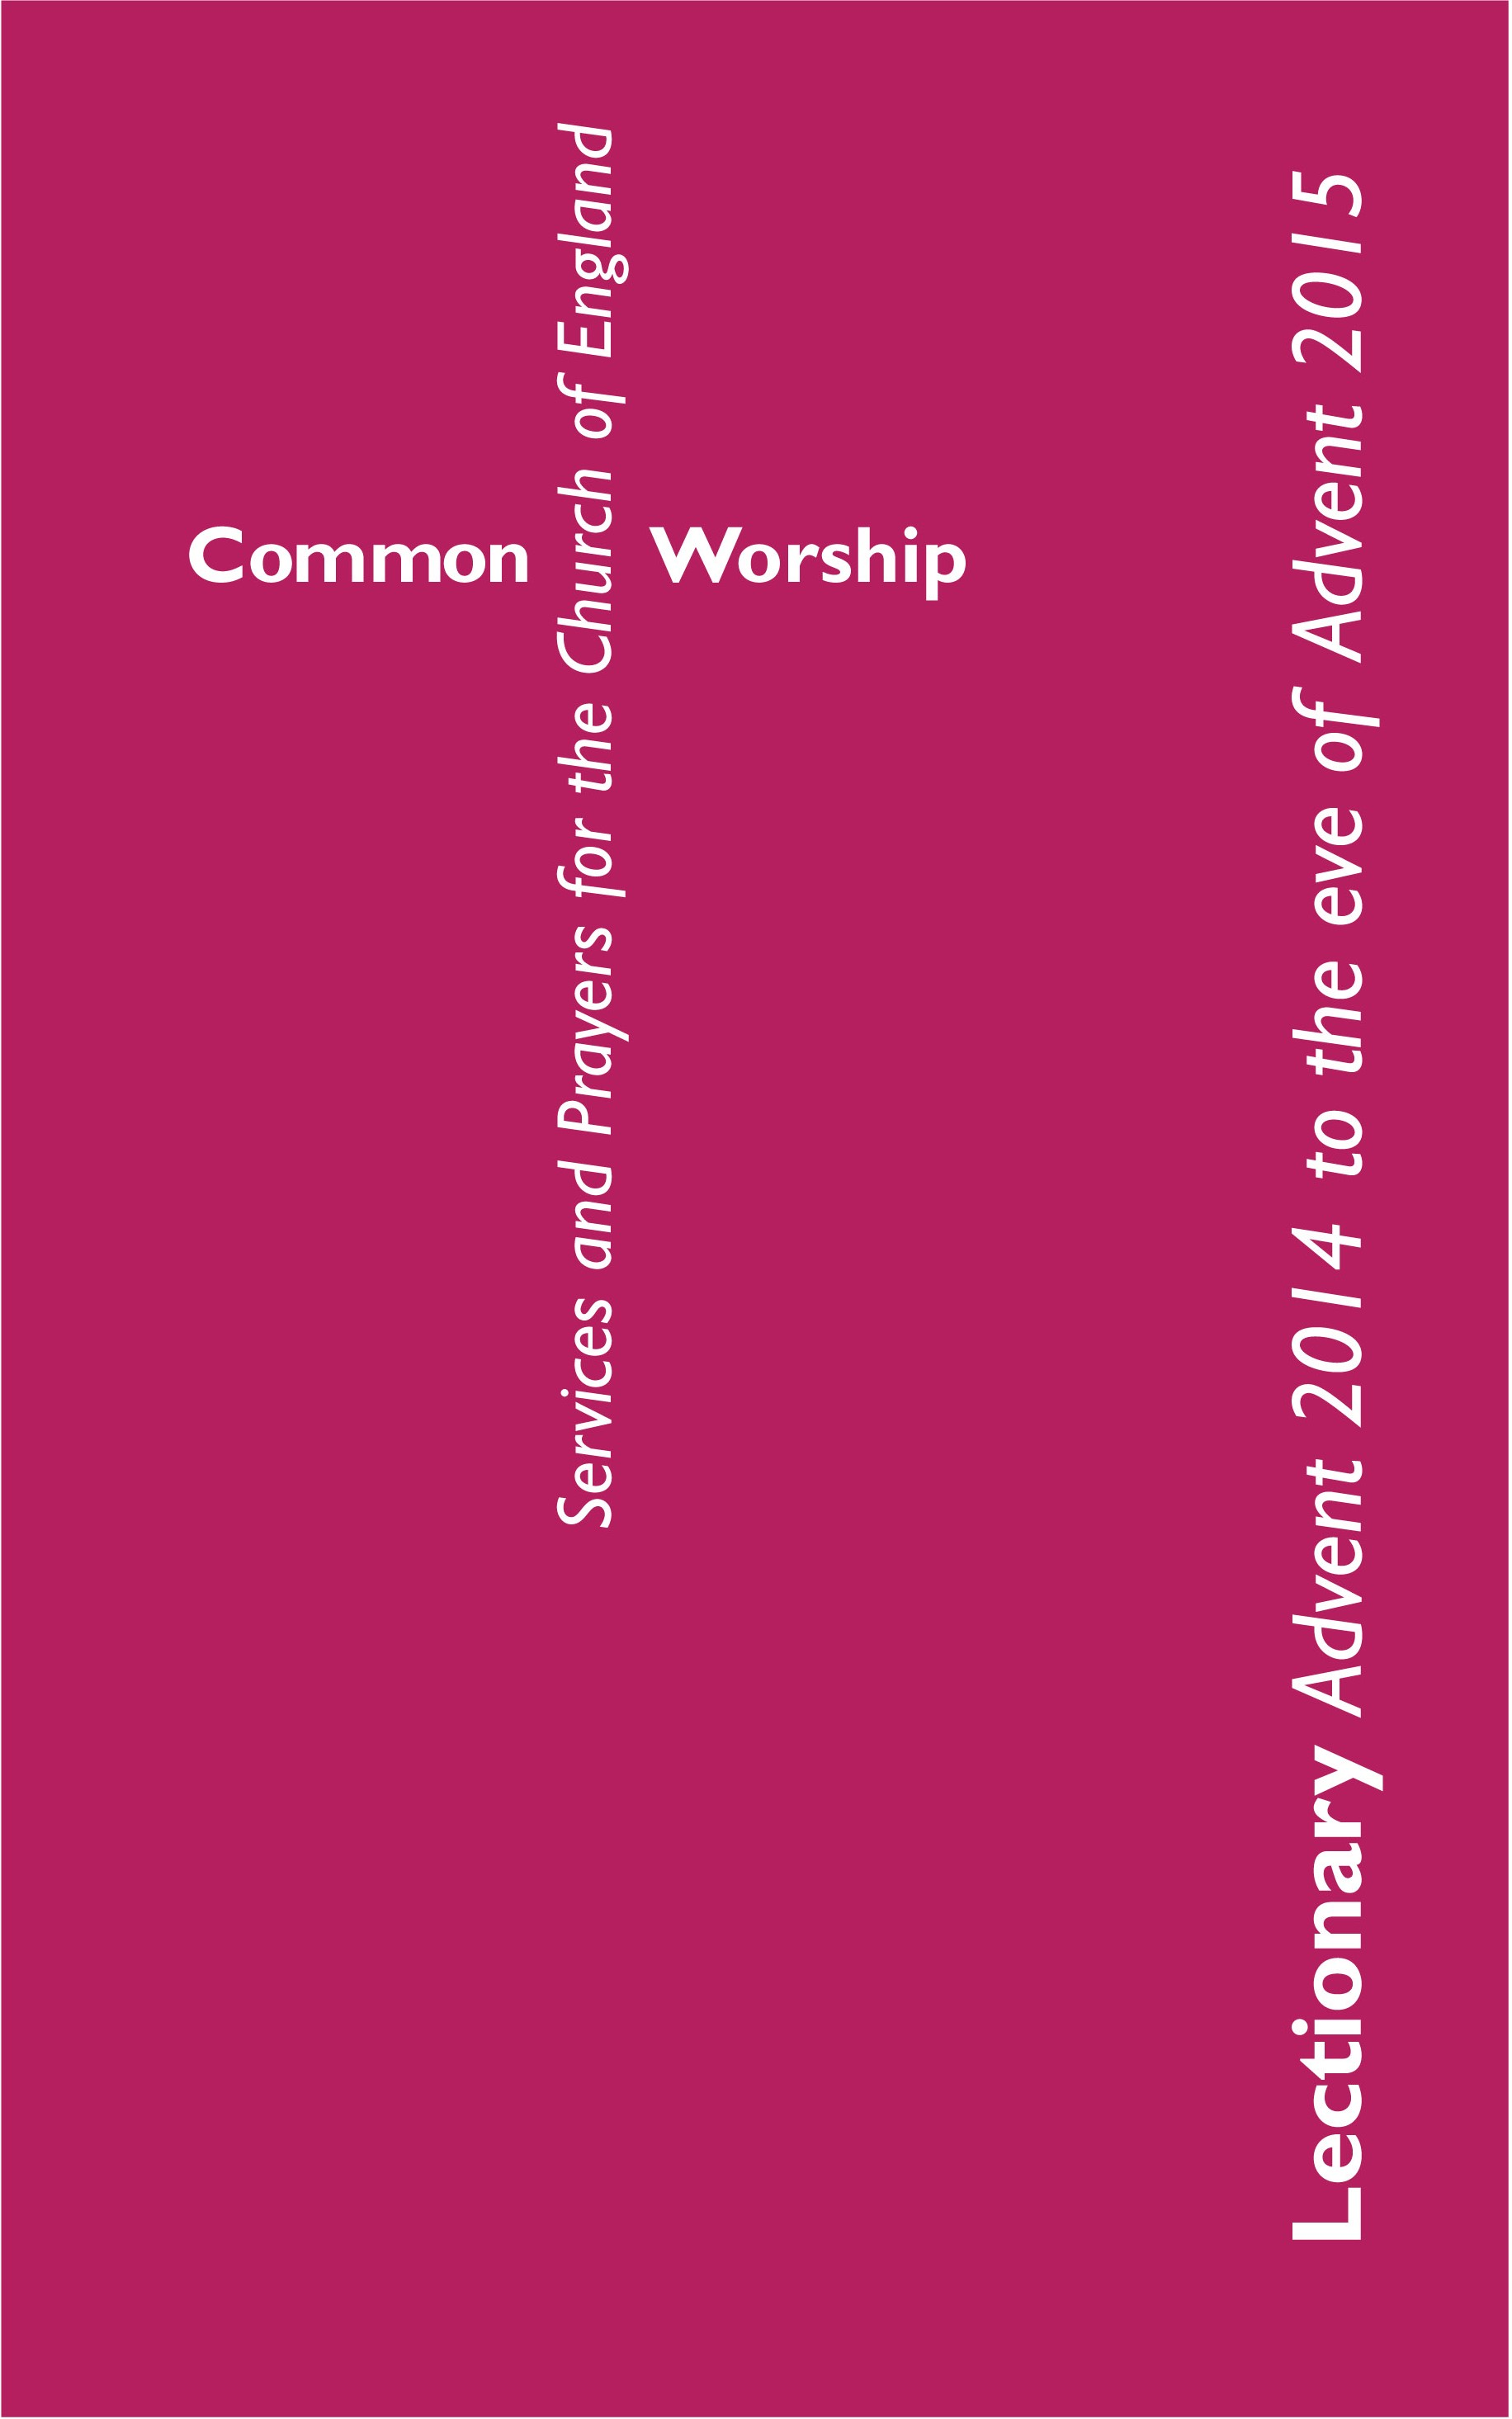 Common Worship Lectionary: Advent 2014 to Advent 2015 XLS (SPREADSHEET) Version